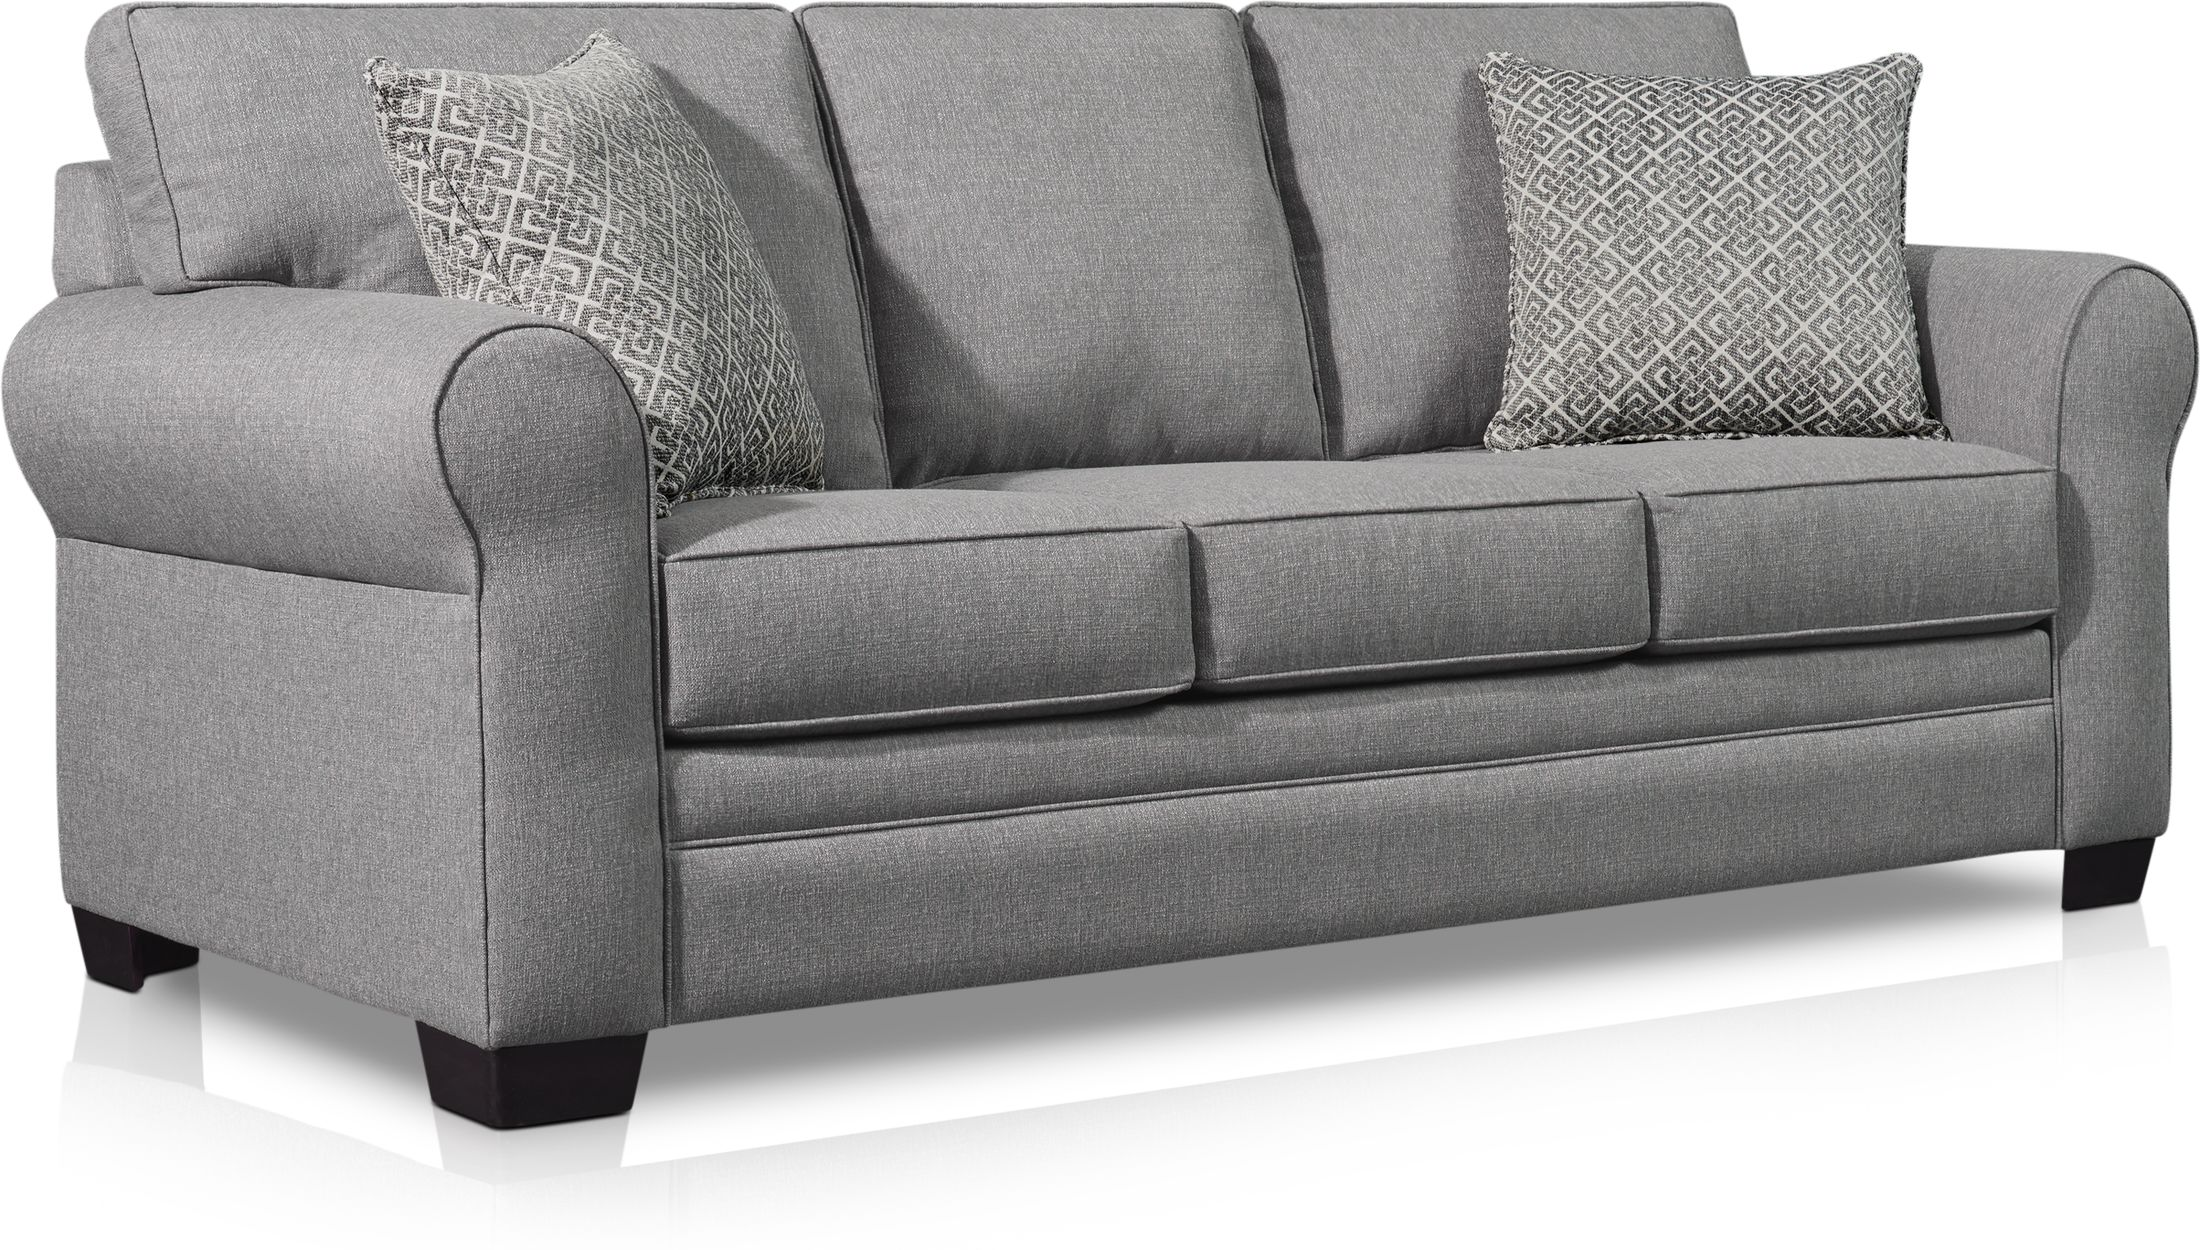 Camila Sofa Value City Furniture